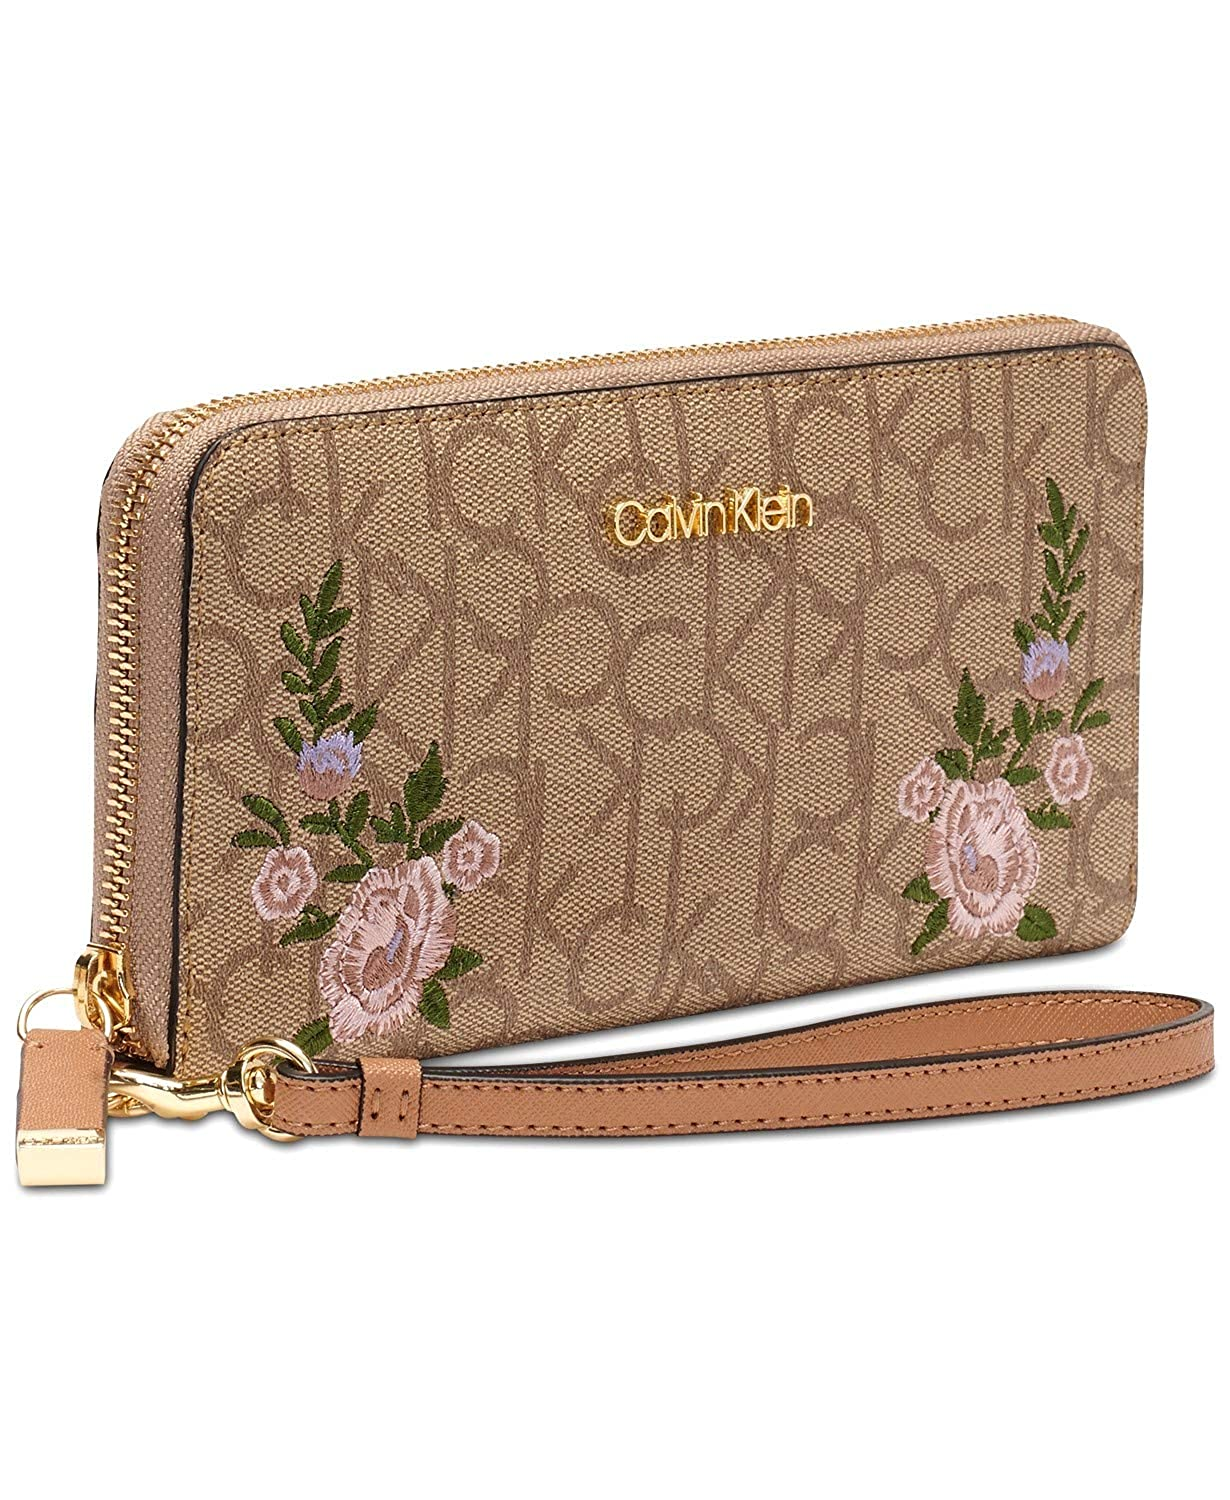 38446a52877f96 Amazon.com: Calvin Klein Logo Pink Floral Embroidered Saffiano Leather  Wallet Wristlet Clutch Bag: Shoes